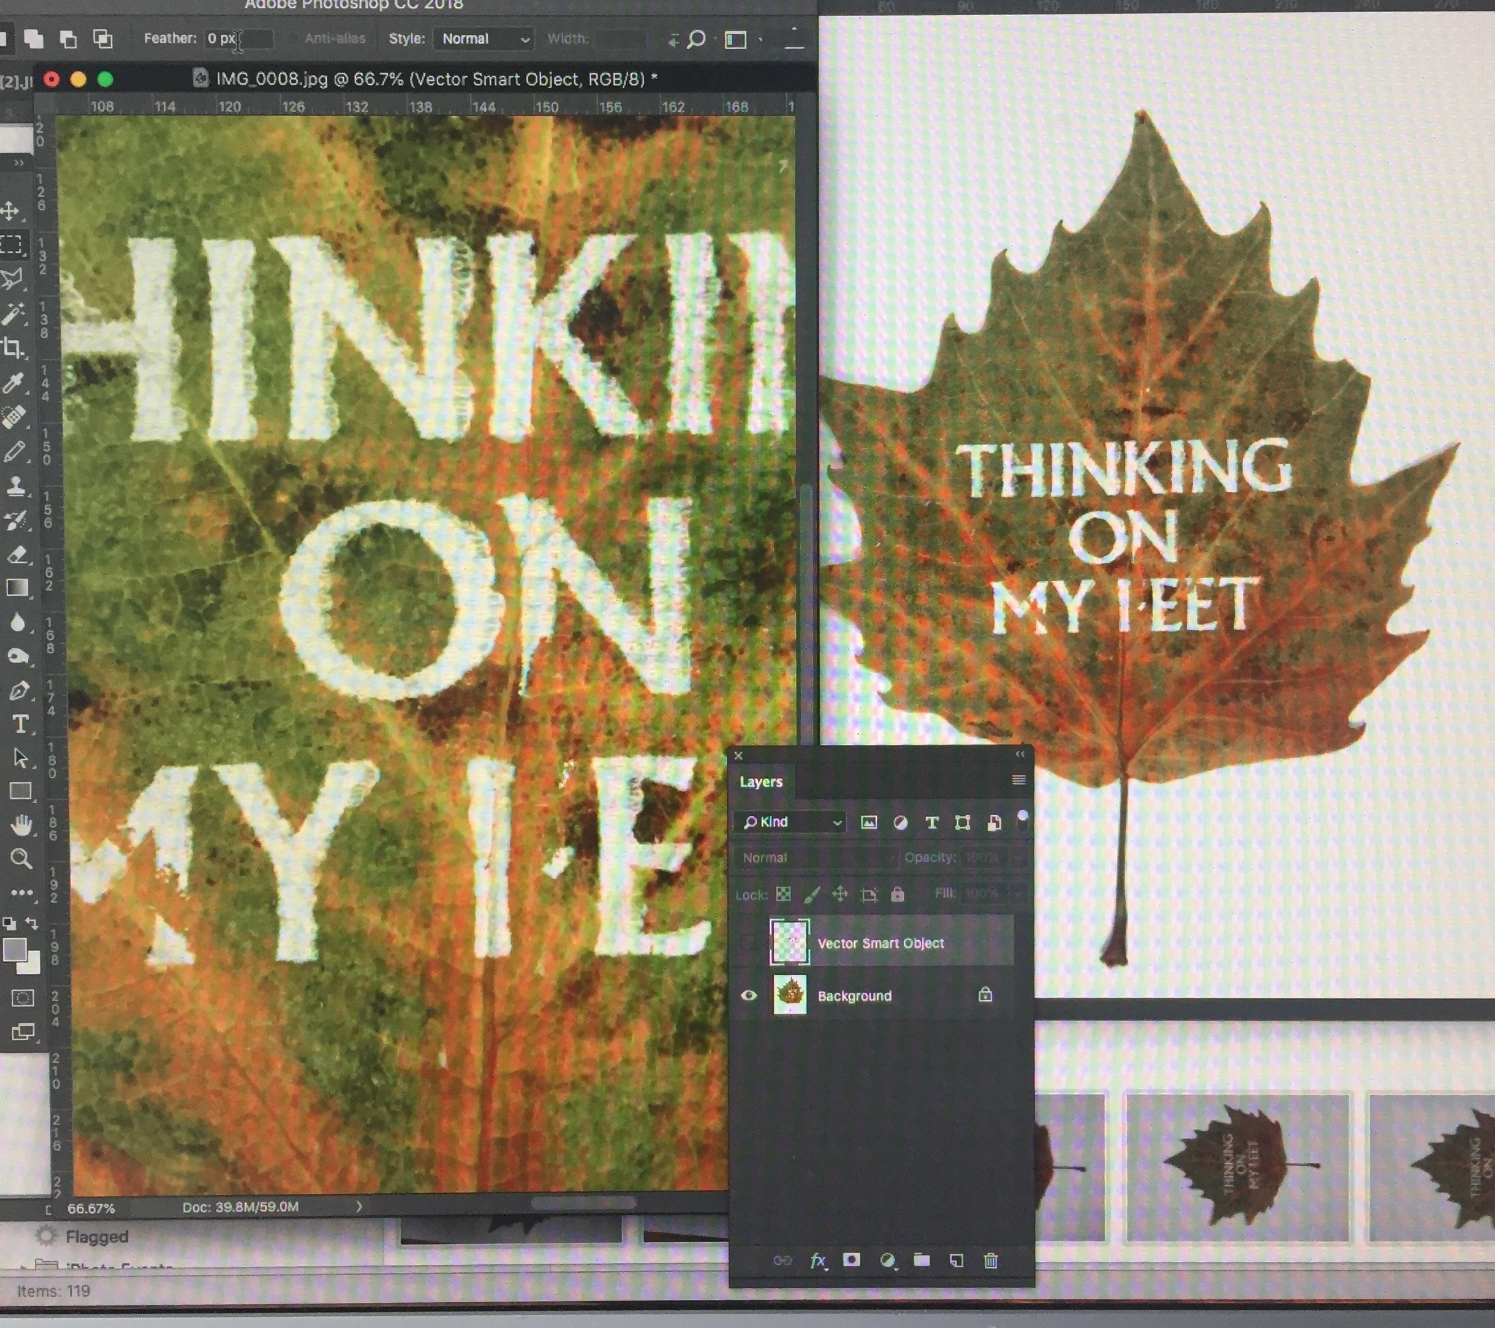 …and transferring to screen for retouch. The original leaf (having been dried and pressed for a while) had developed hardened veins which proved difficult to screen print on, so a little type retouching was needed for cover legibility purposes